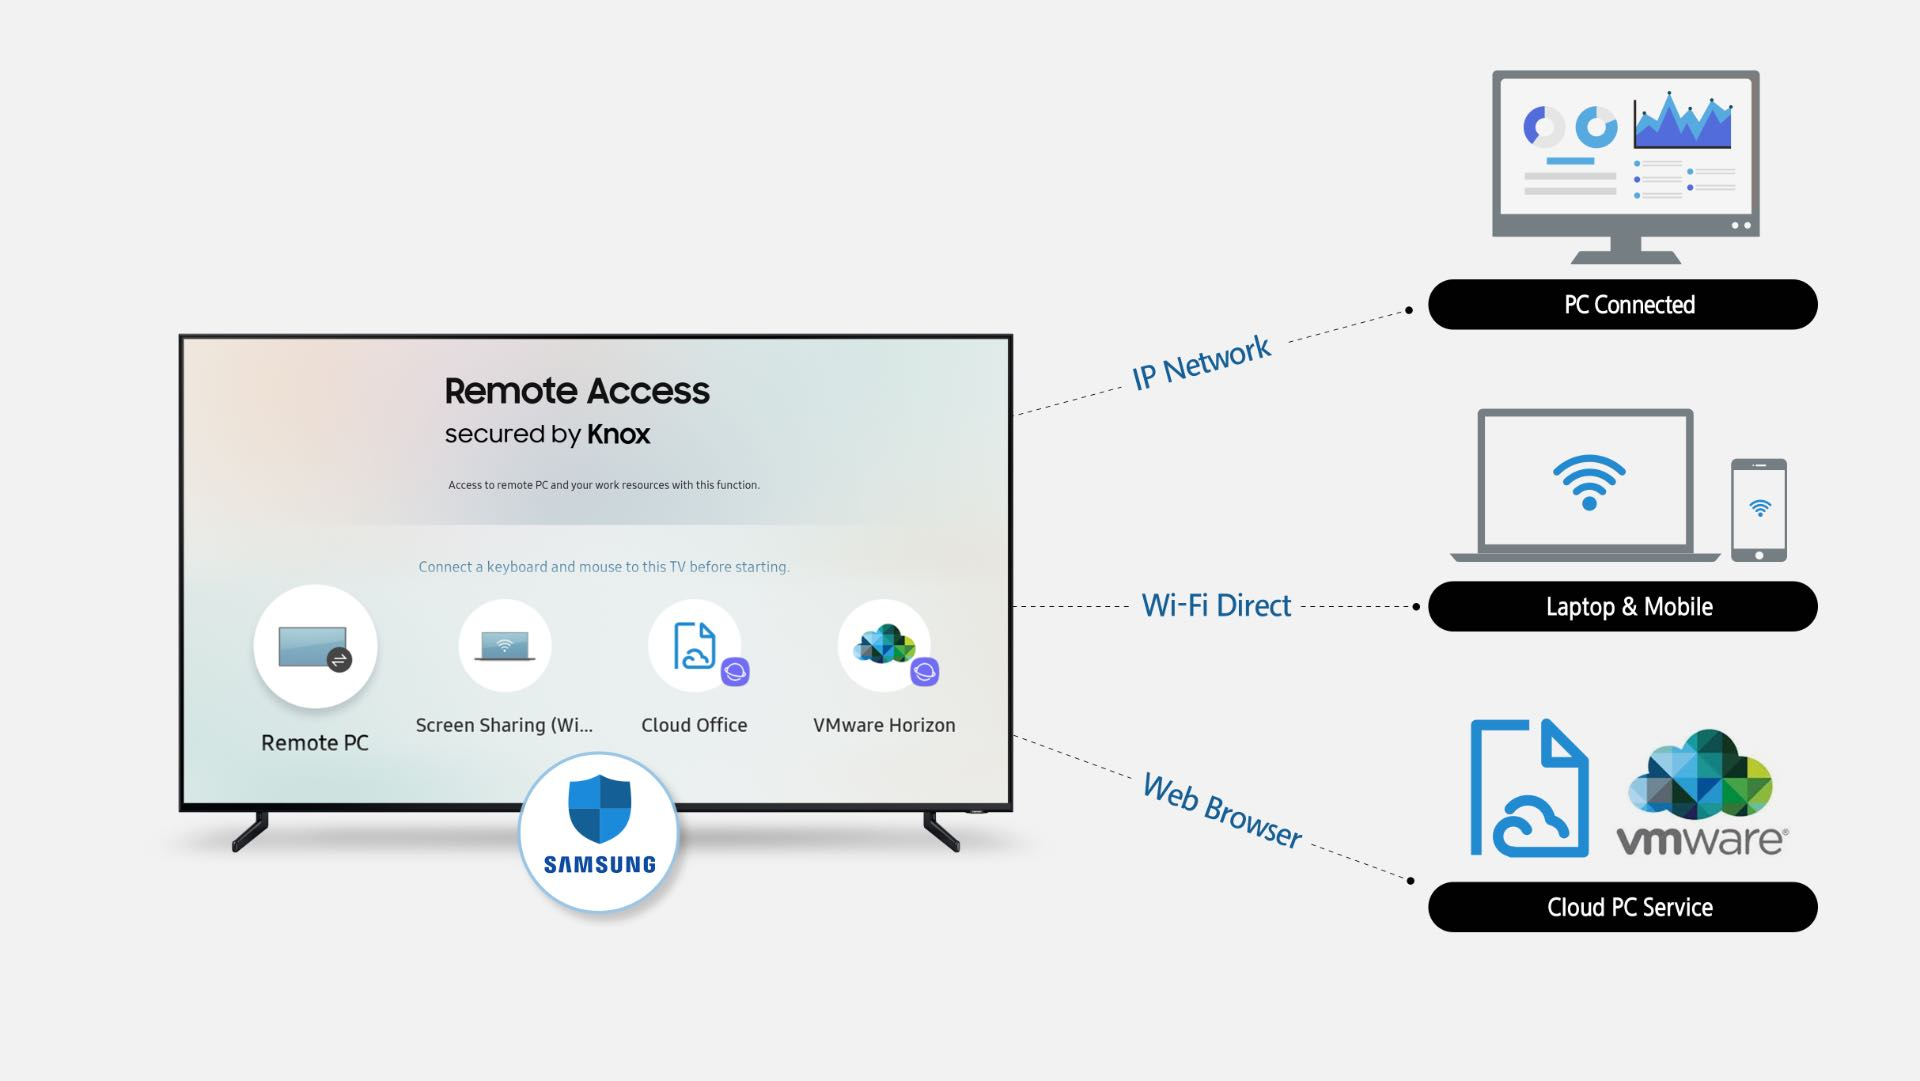 Samsung Remote Access